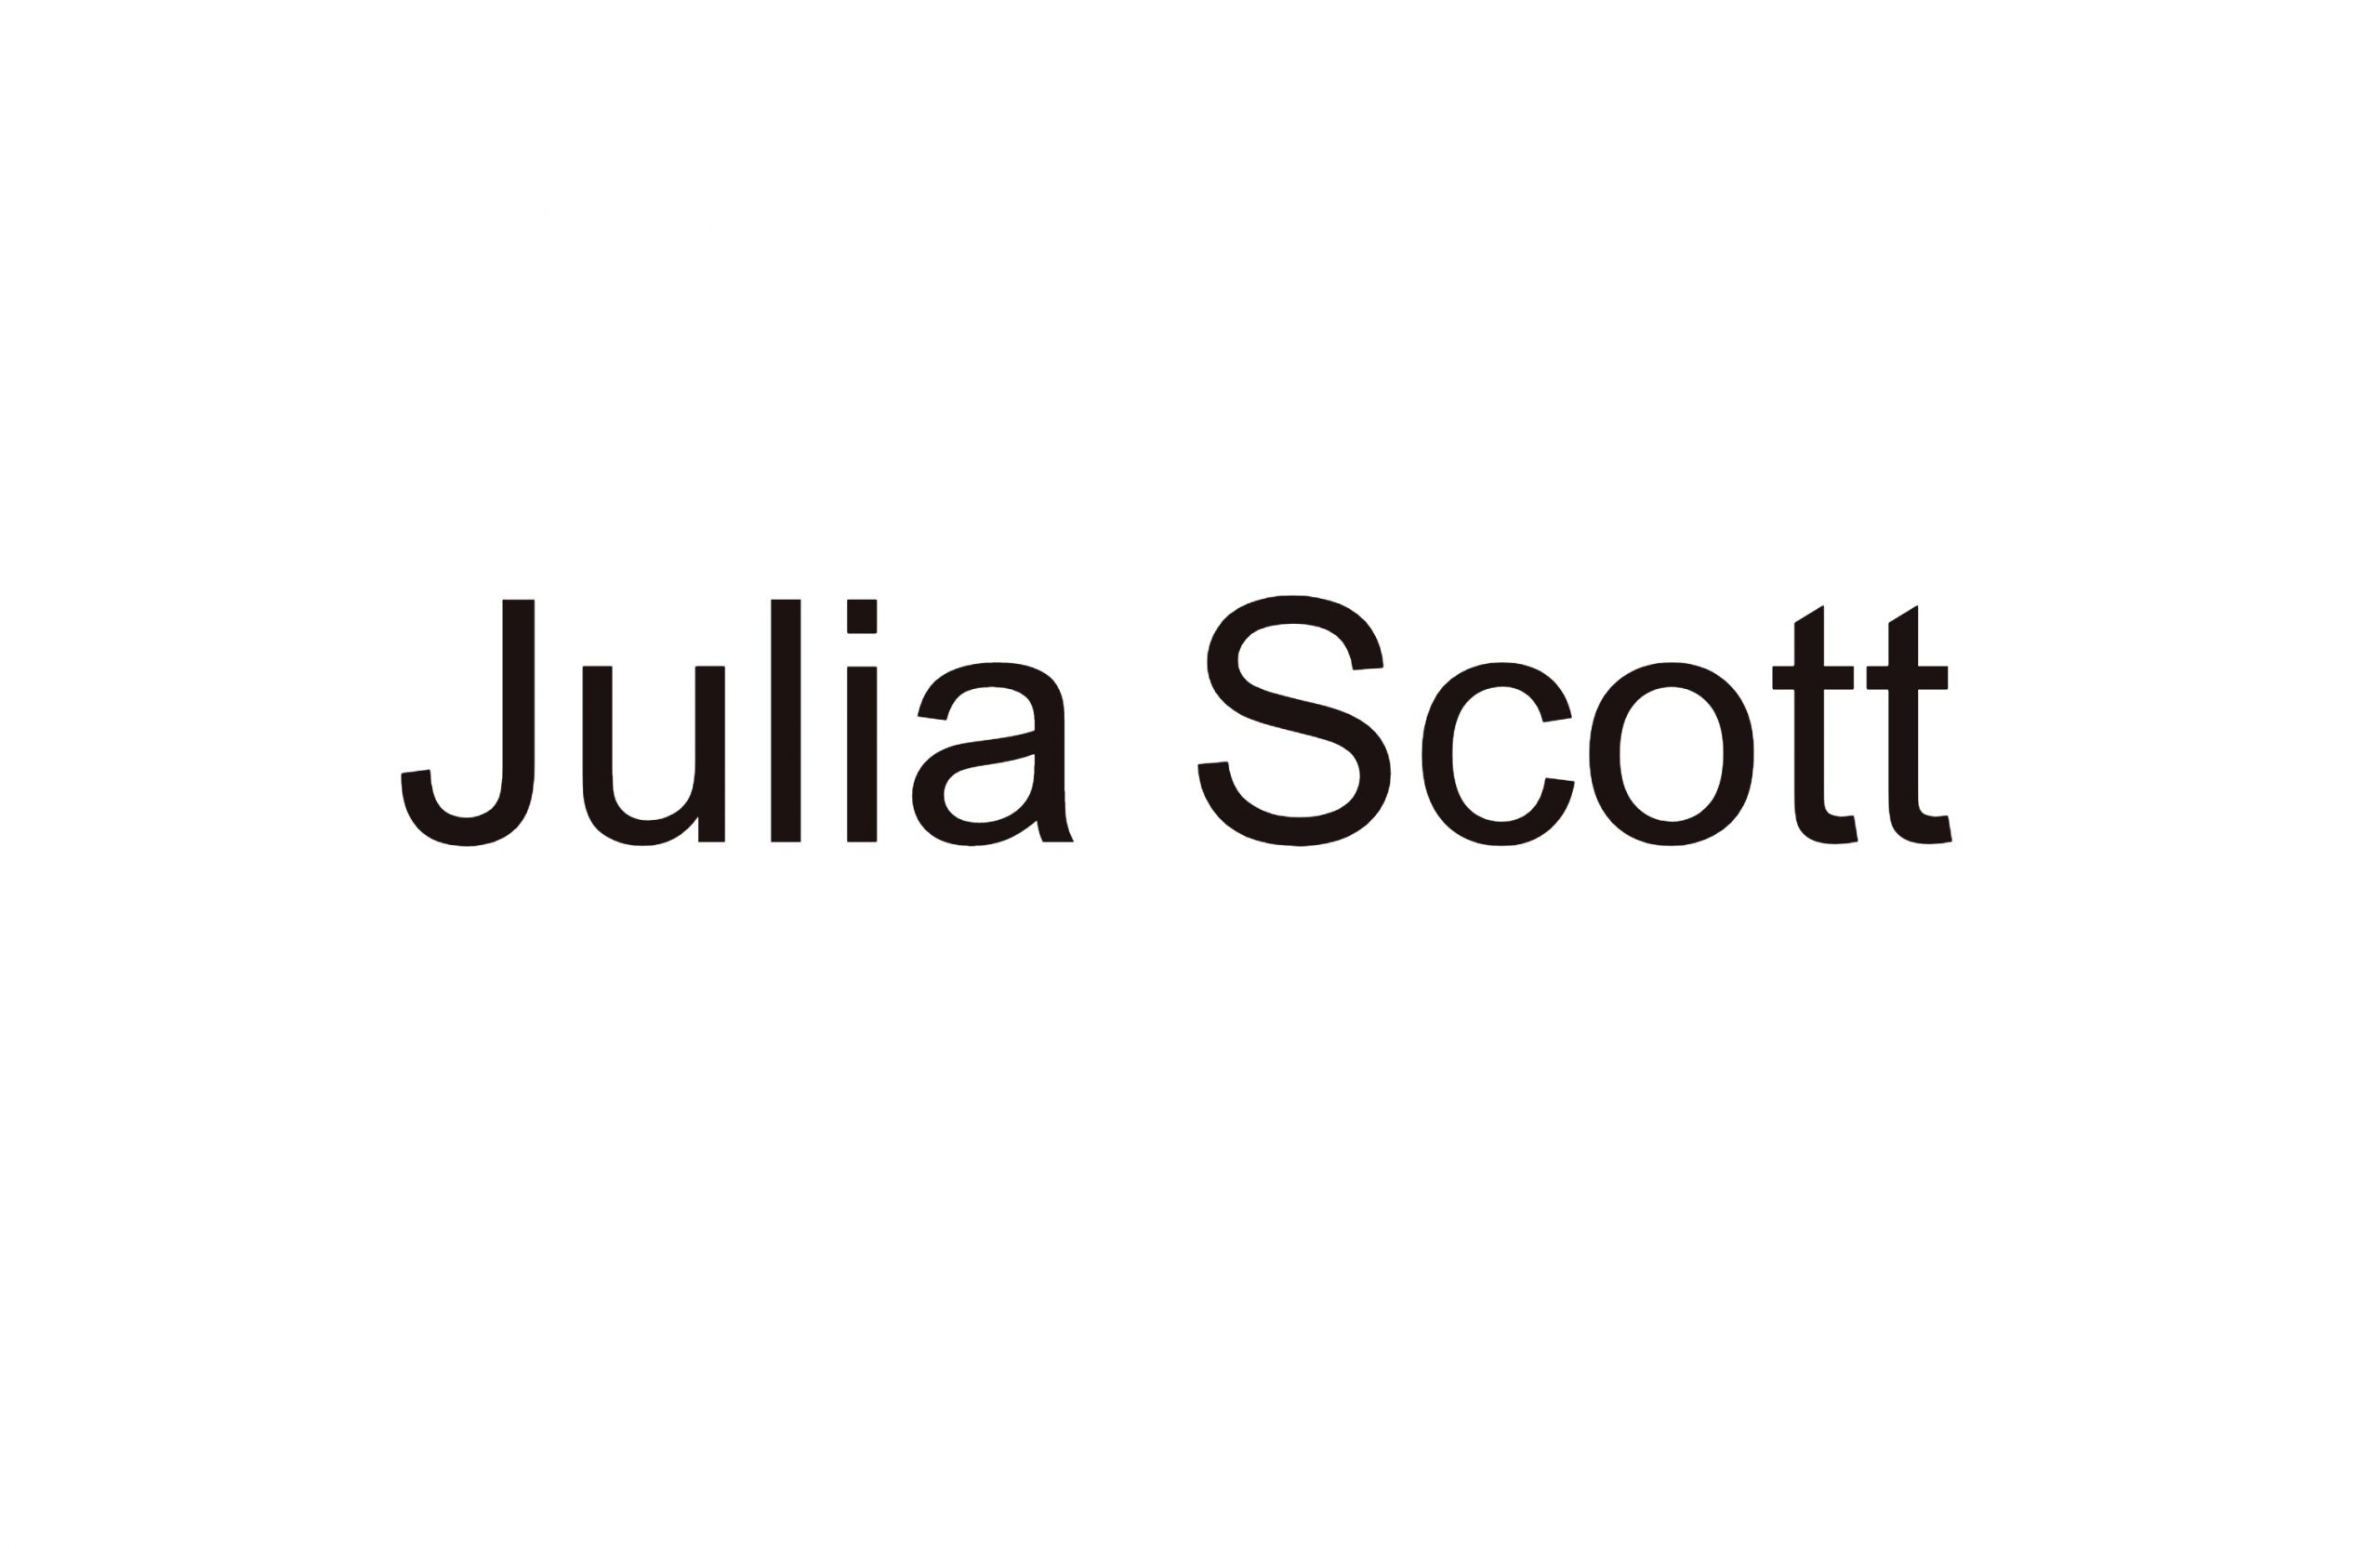 Author Julia Scott